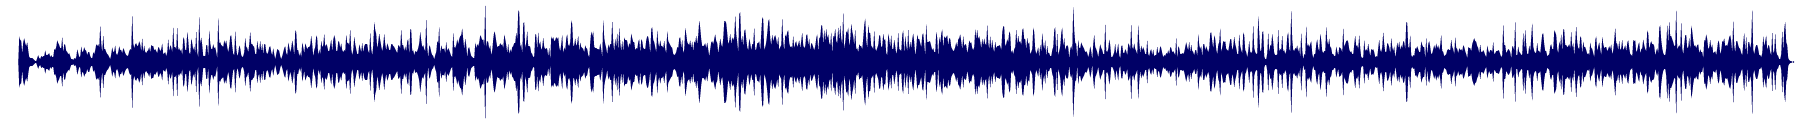 waveform of track #78887